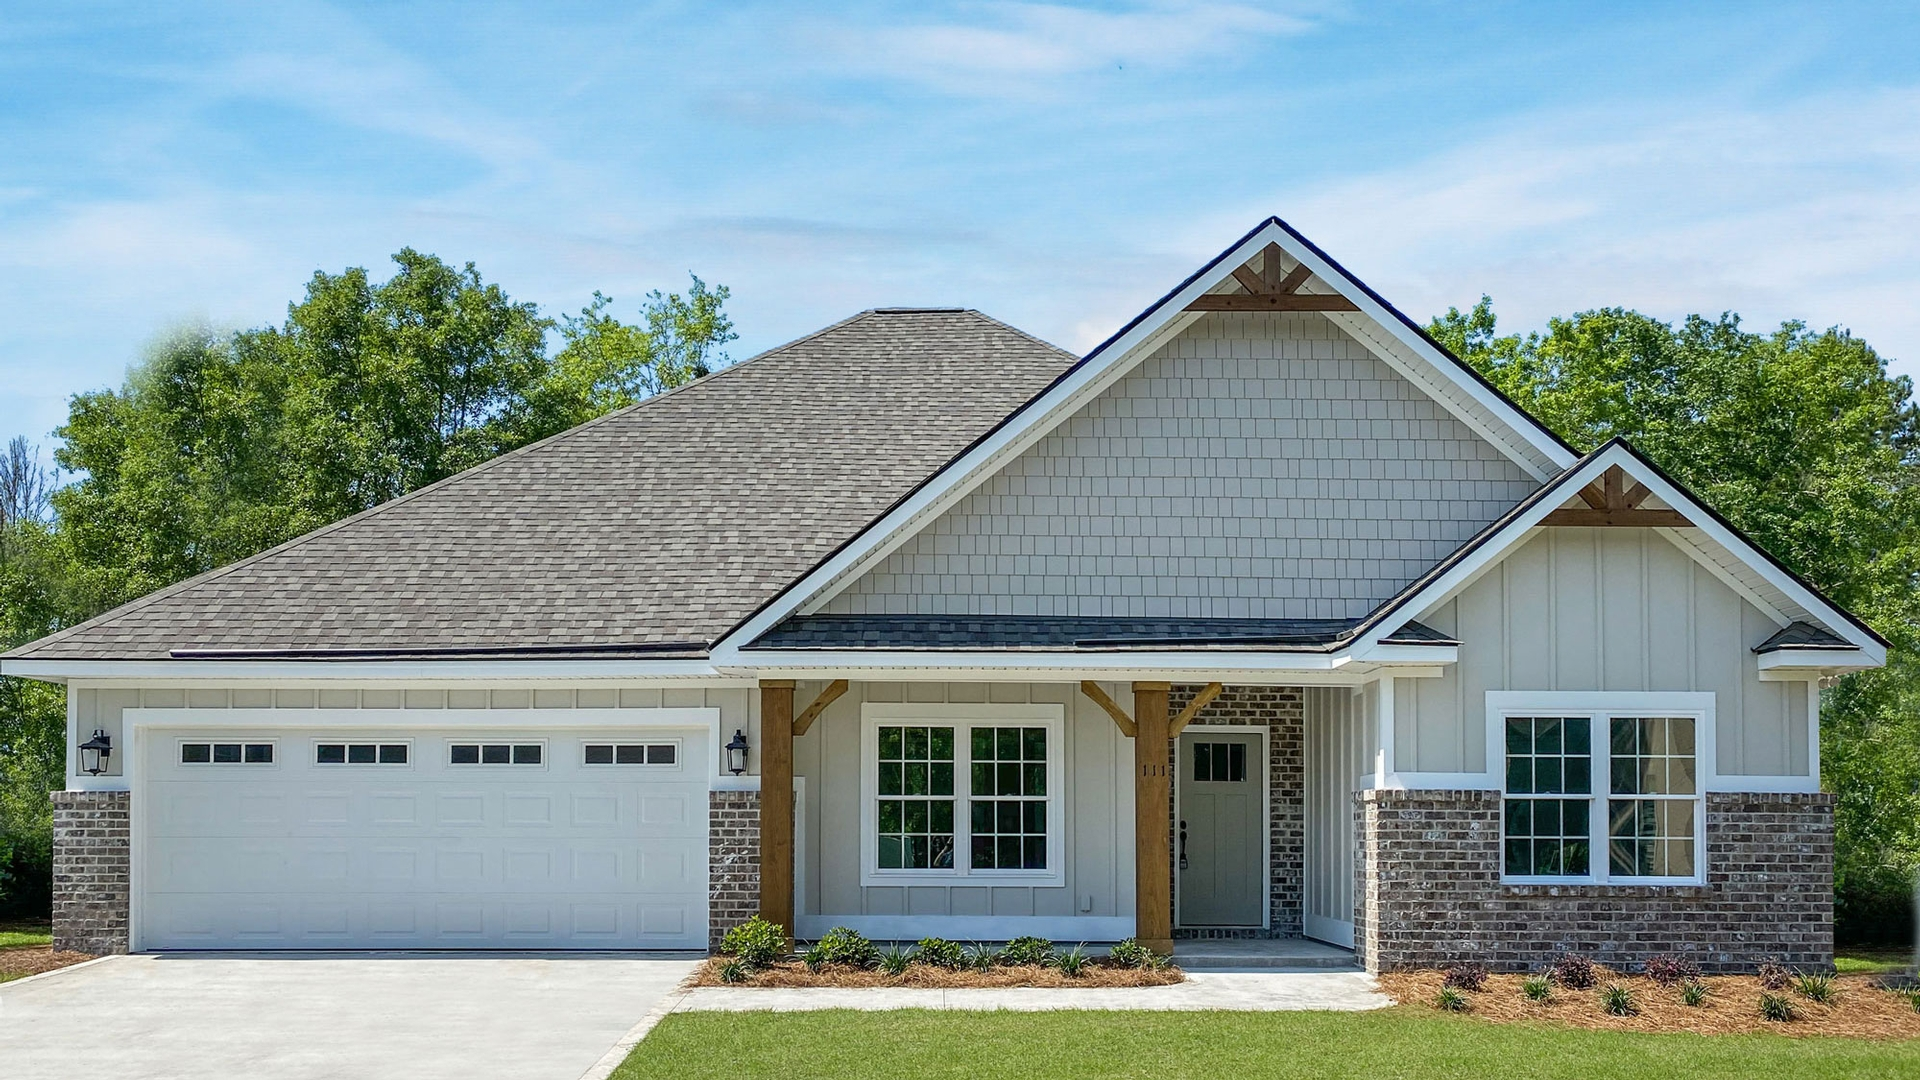 brunswick homes for sale, brunswick real estate, The Buford Floor Plan,